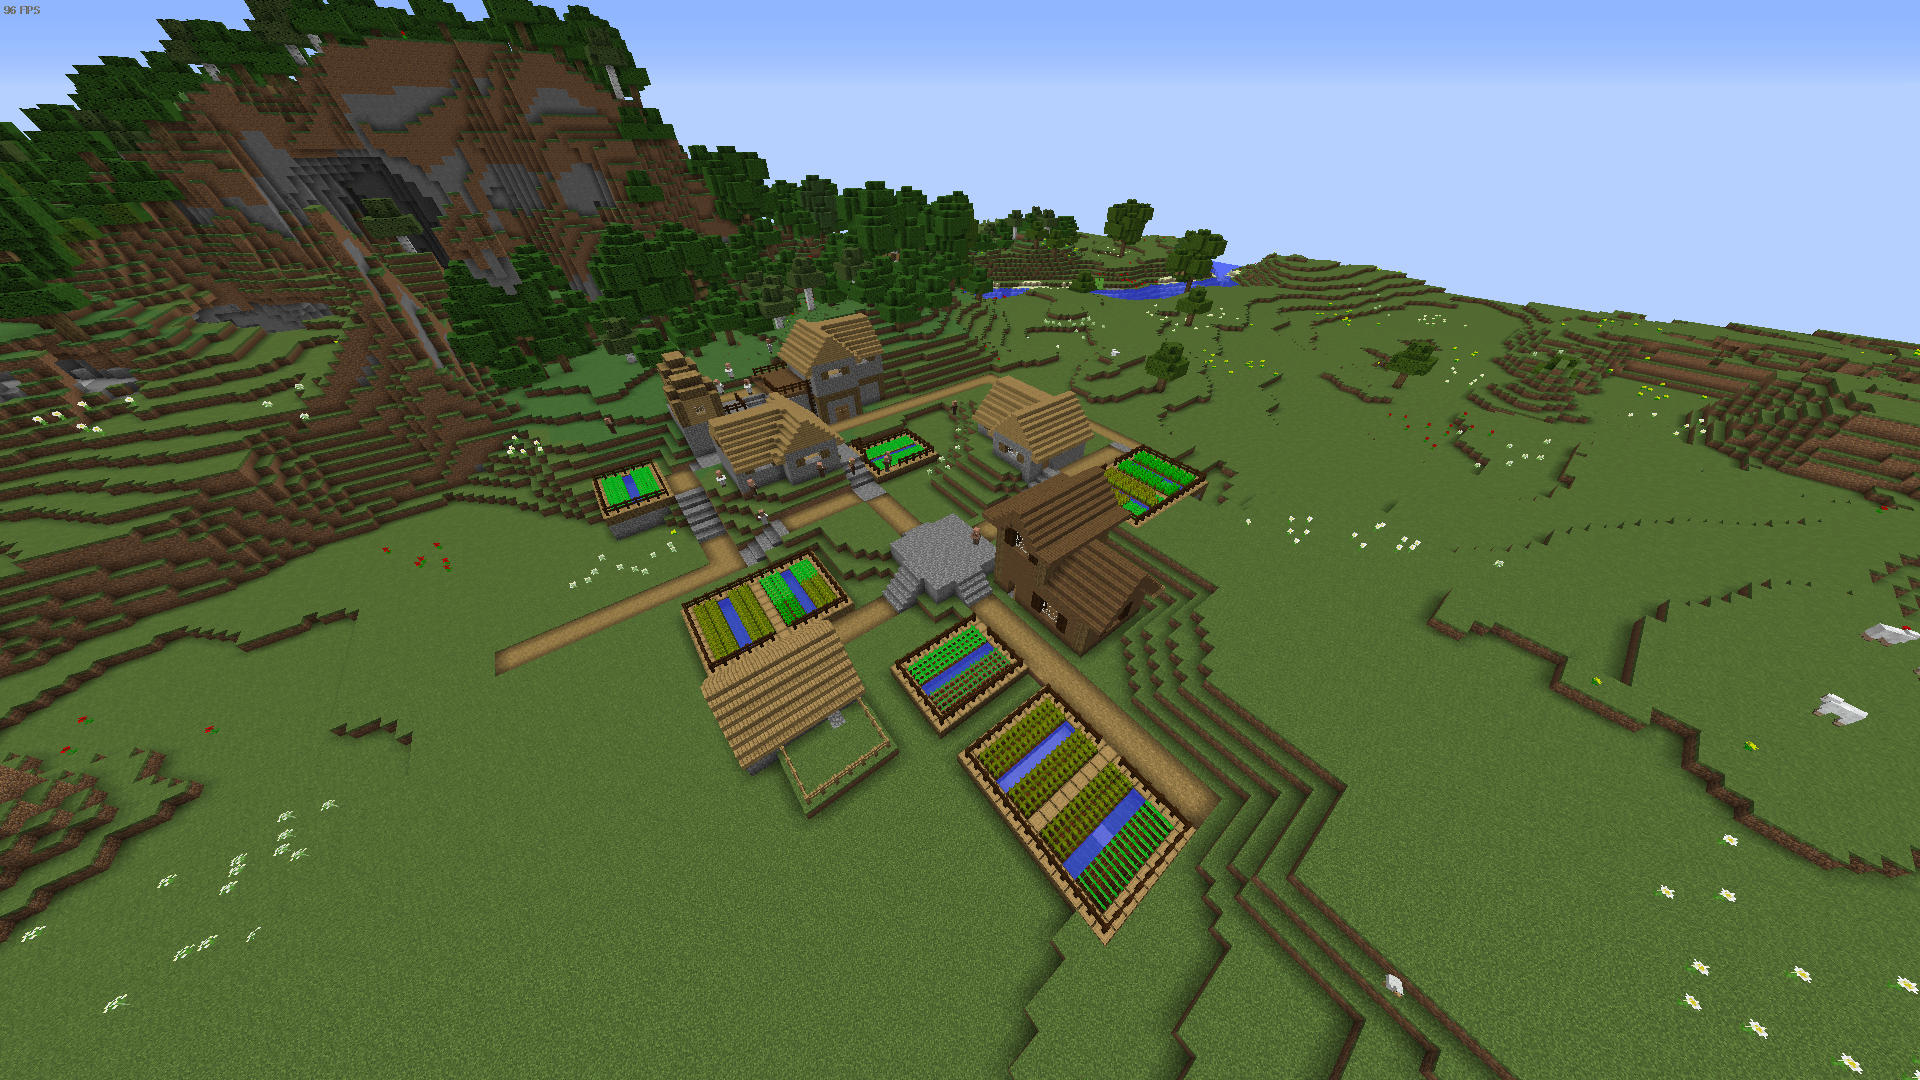 The Transformed Village screenshot 3